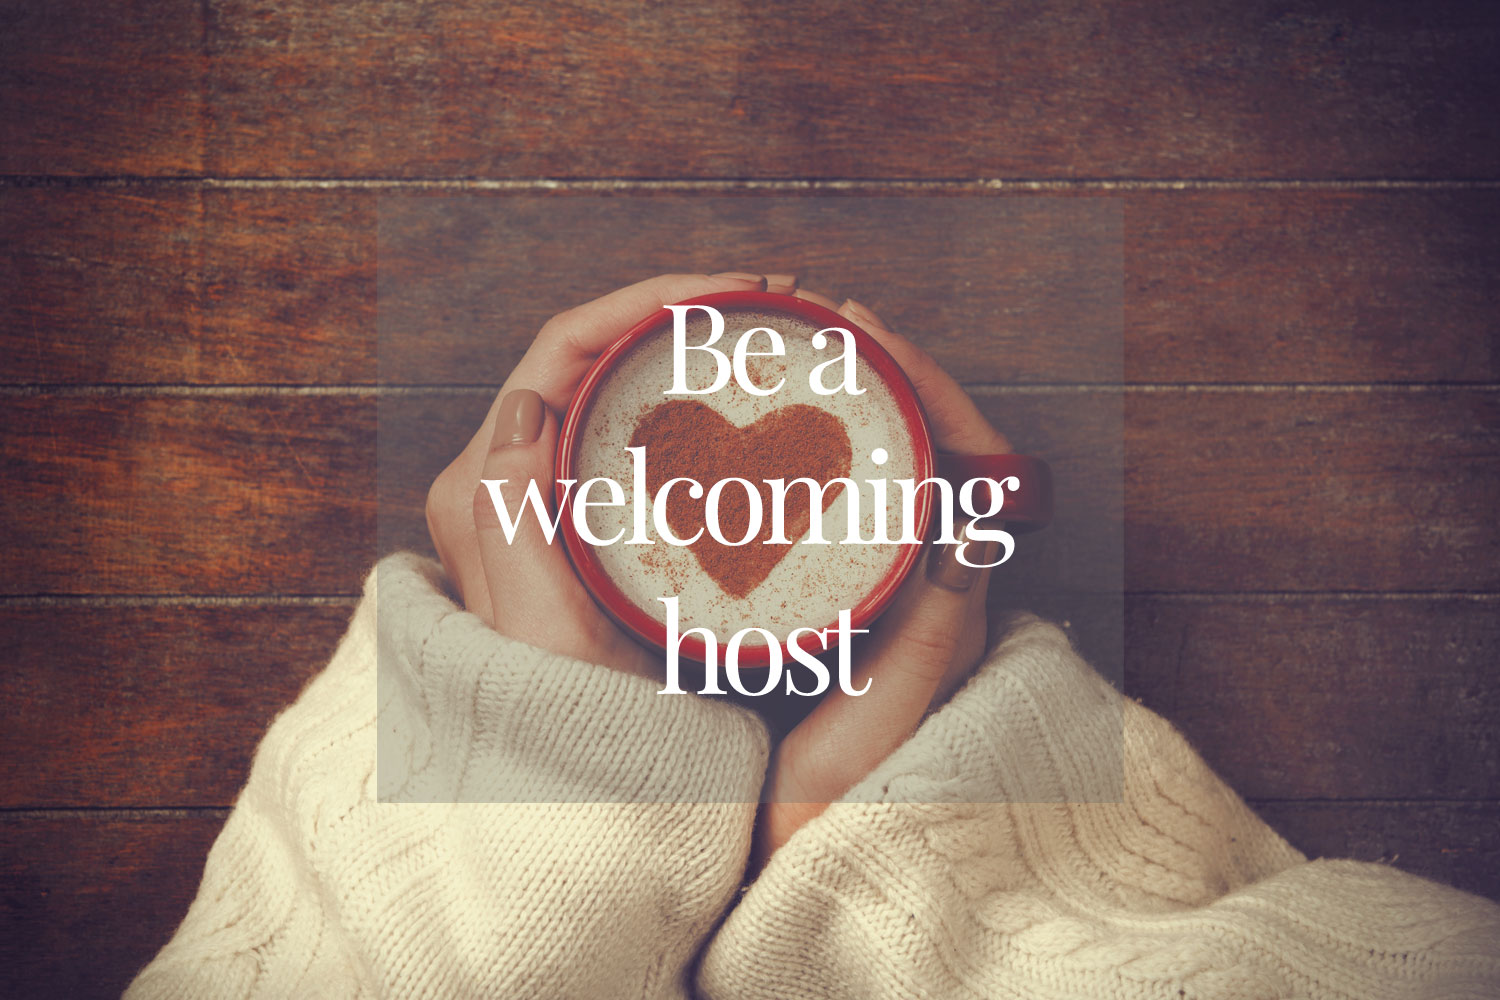 Be a welcoming host